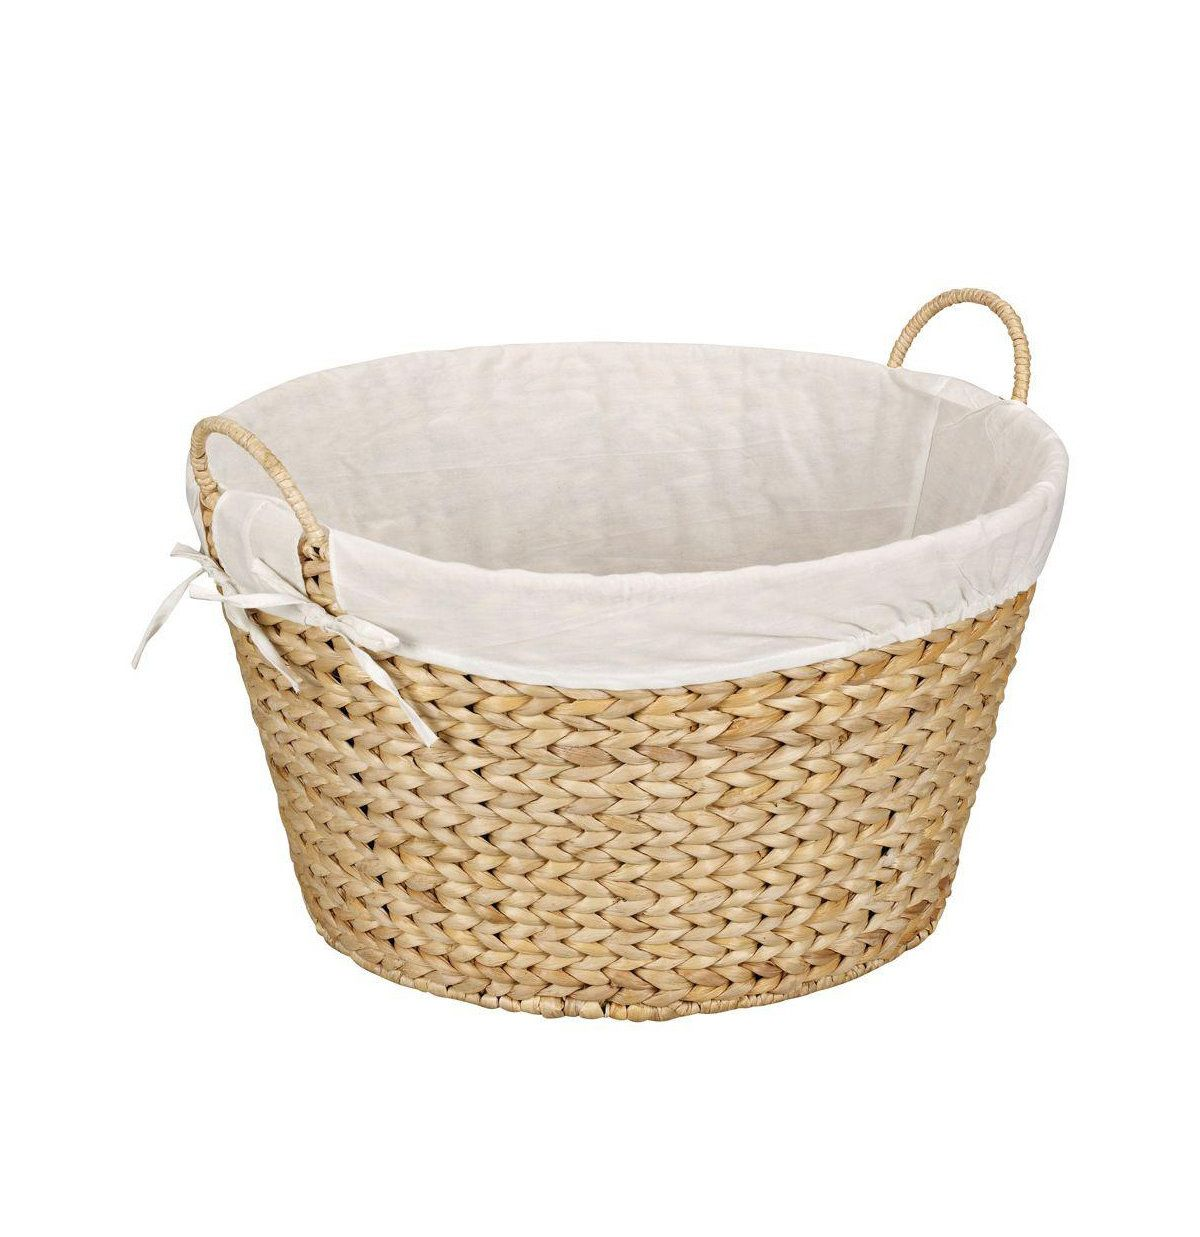 The 7 Best Laundry Baskets To Make Laundry Day Much Easier Woven